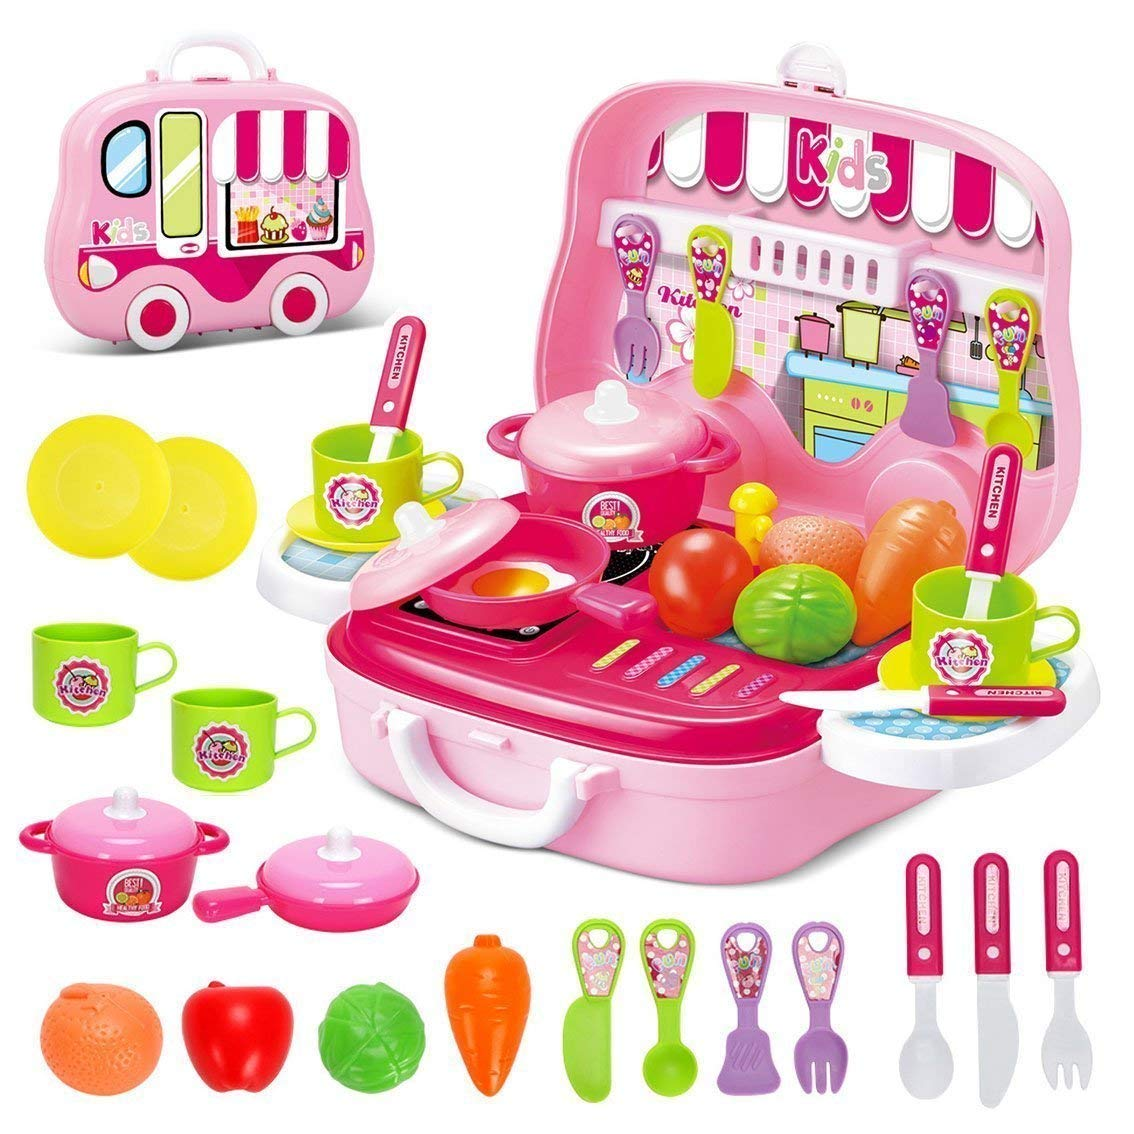 Buy Toyshine Diy Luxury Kitchen Set With Briefcase And Accessories Pink Online At Low Prices In India Amazon In